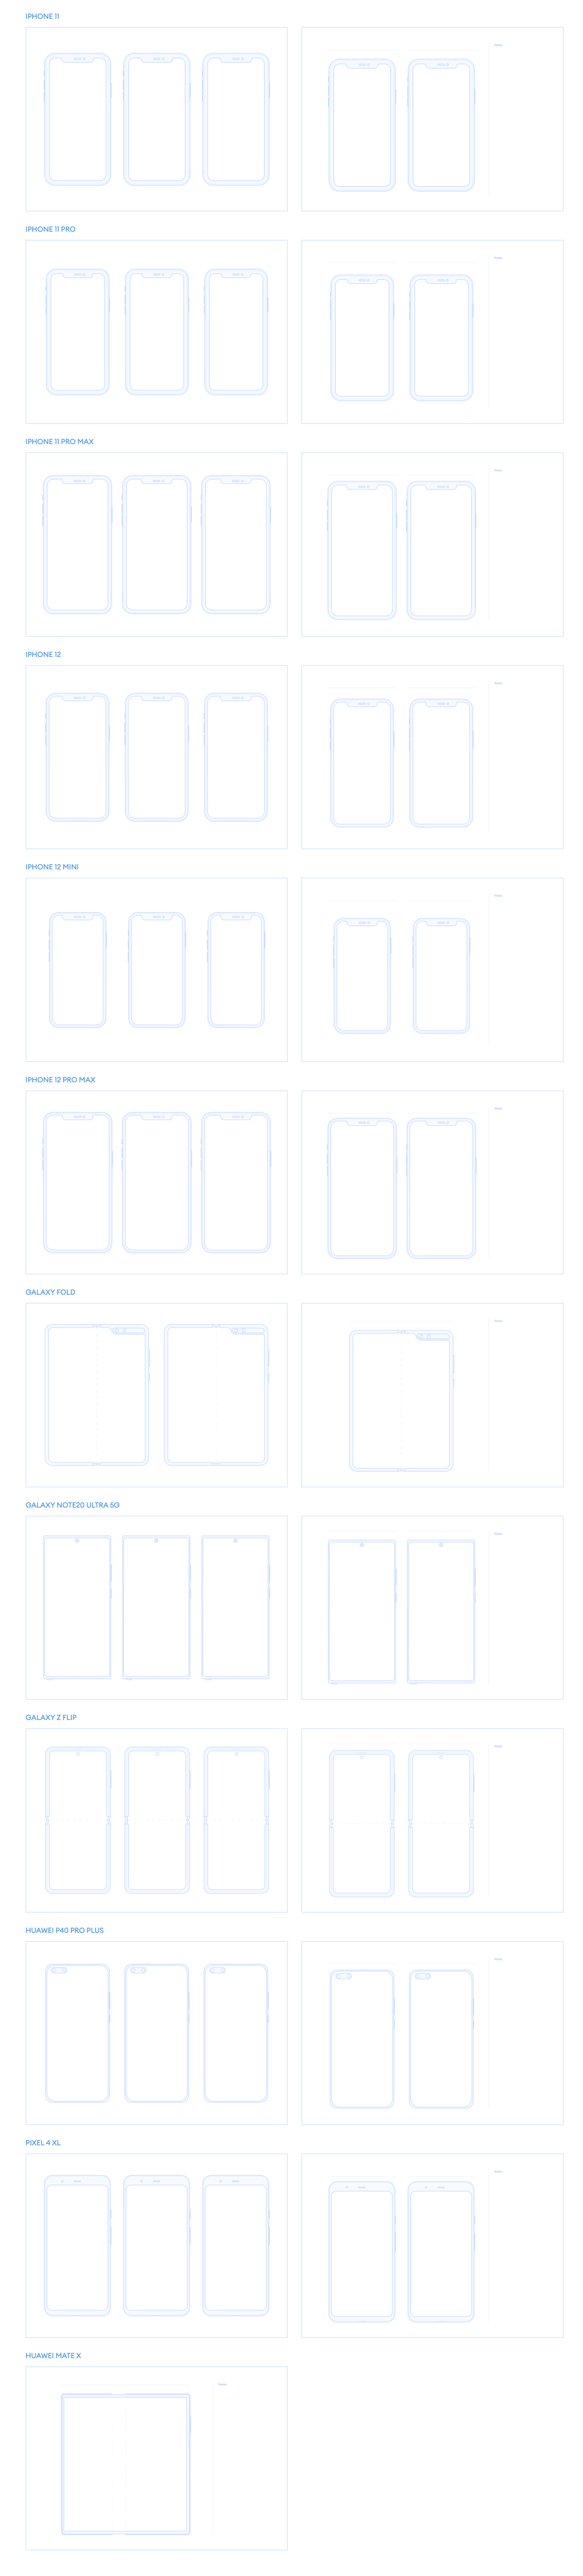 Printables Free Template for Figma - Free printable templates for your mobile sketching. Start creating your app with a clean mind and representation of a screen structure. There are 12 devices in the pack, for both iPhone and Android, so you can display on multiple devices.